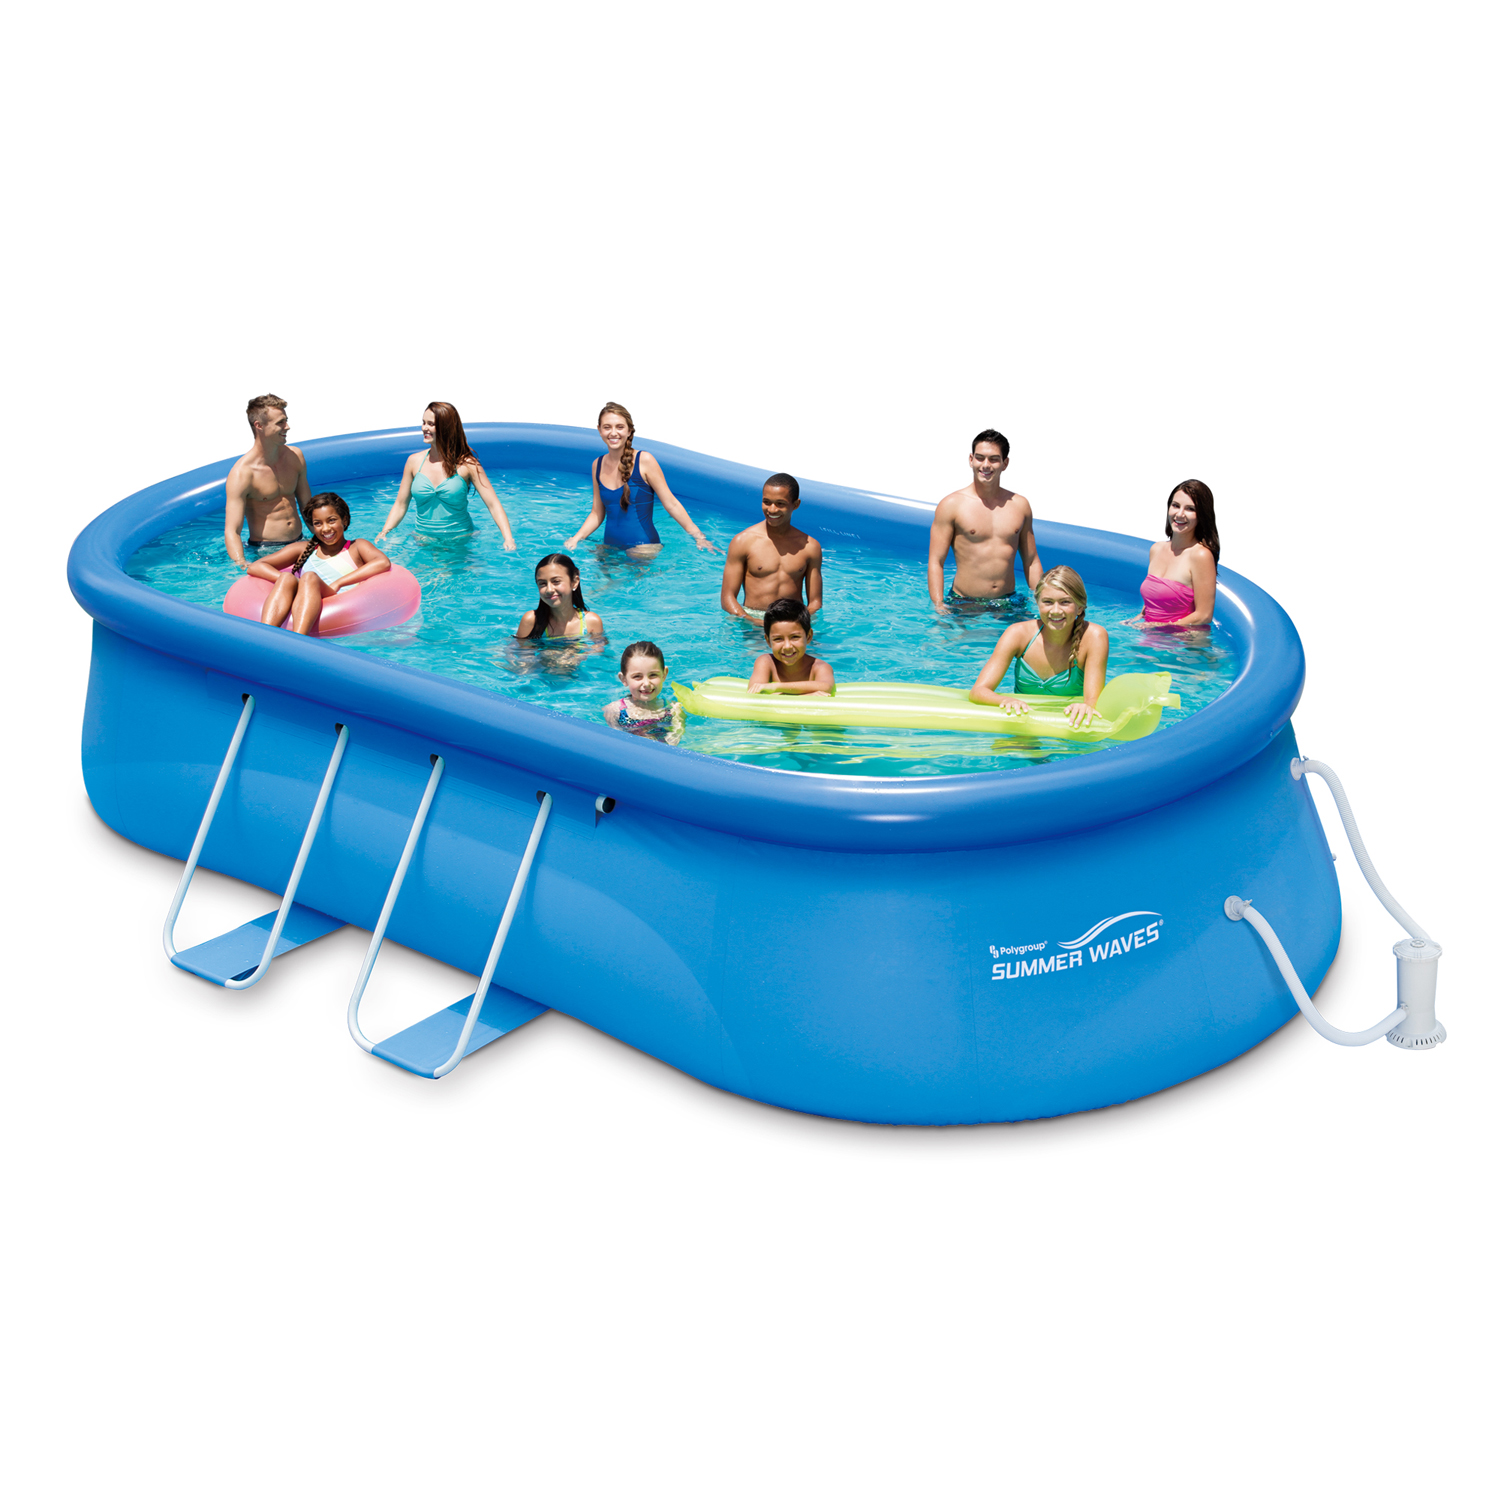 "Summer Waves 20' x 12' 48"" Quick Set Oval Frame Above Ground Swimming Pool with Filter Pump System And Deluxe Accessory Set"